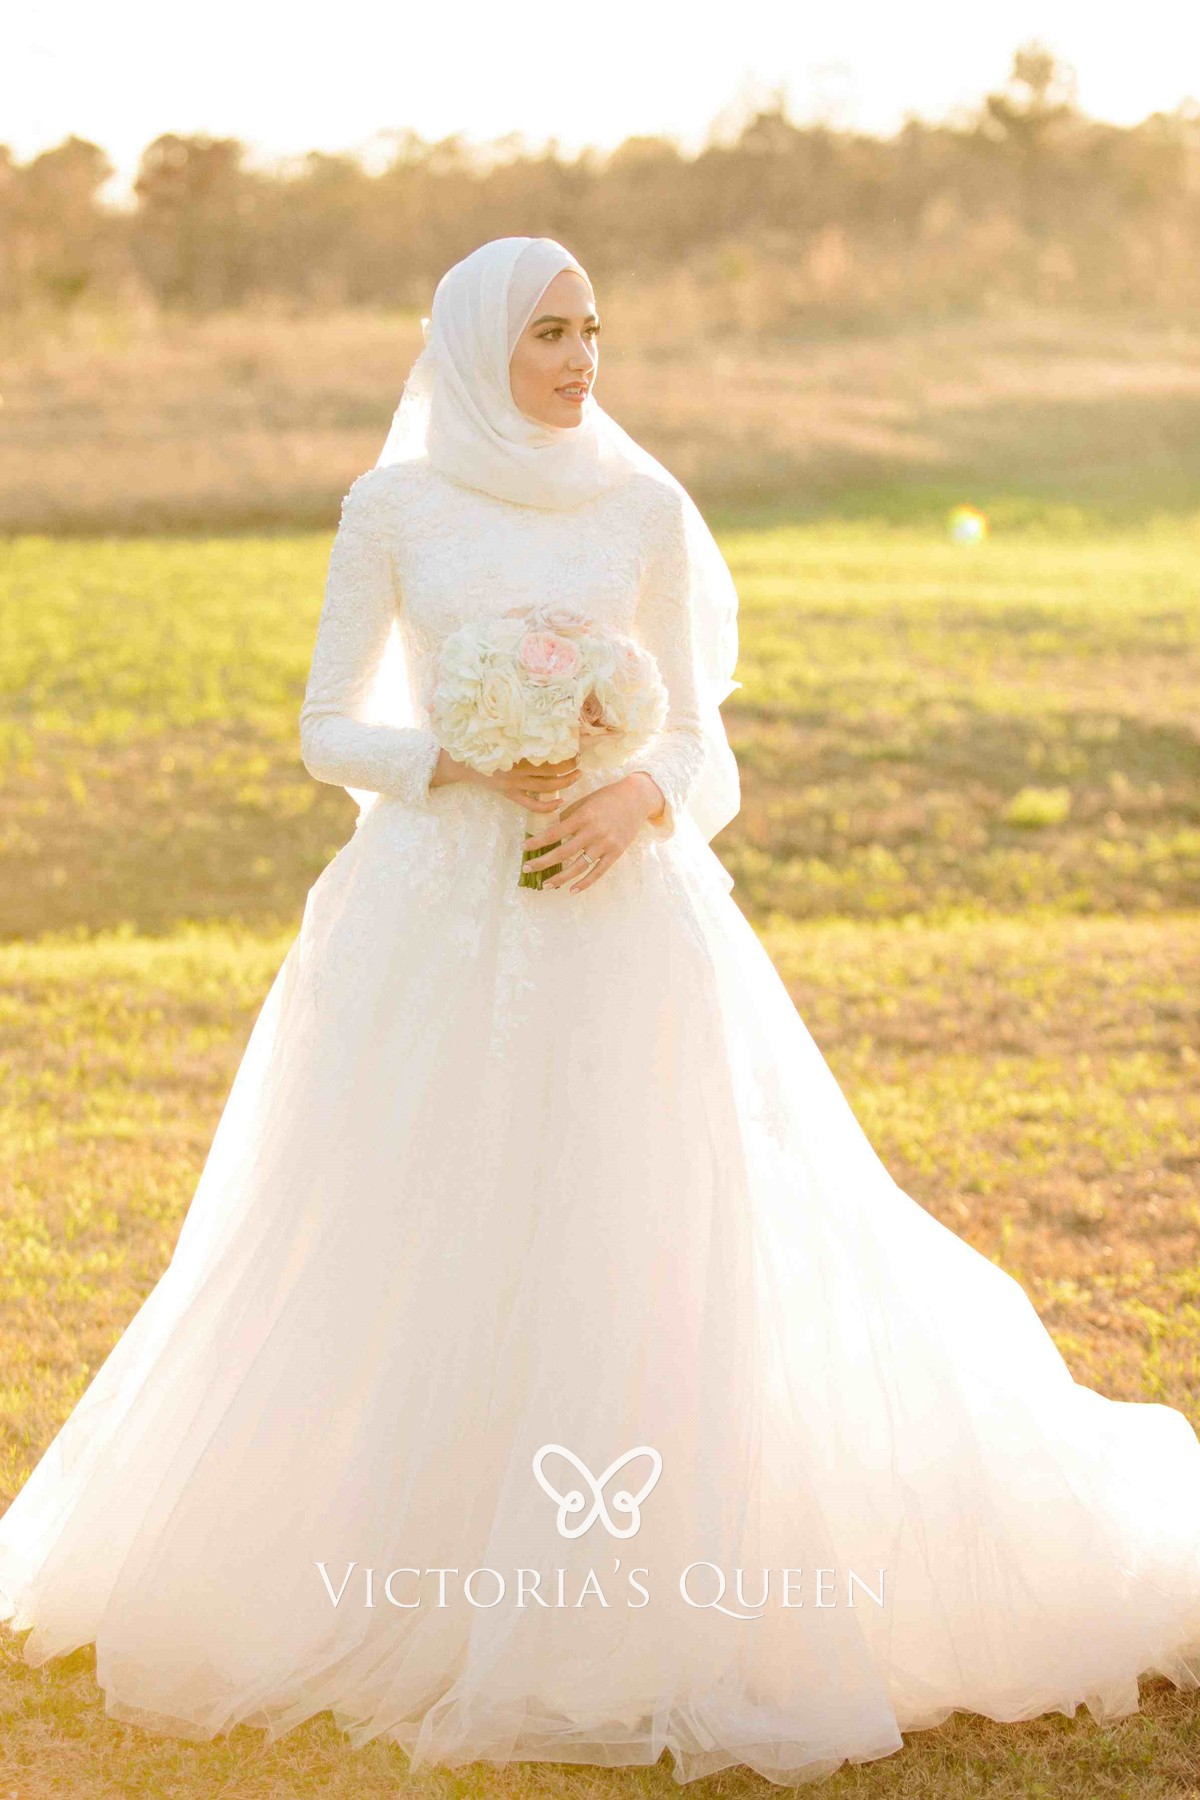 Long Sleeve White Lace Tulle Muslim Wedding Dress Vq